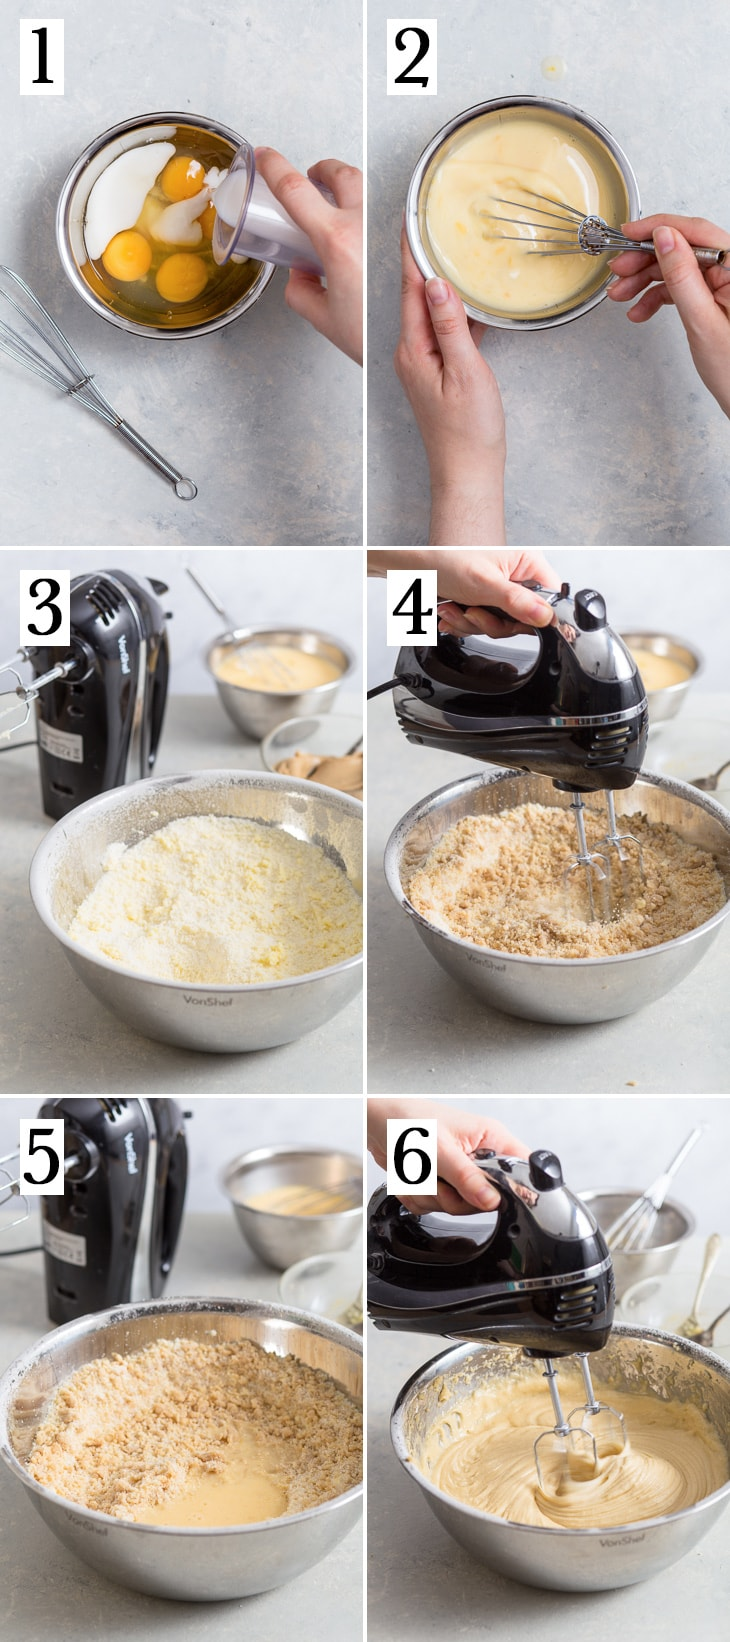 The six-step process of making the gluten free peanut butter sponge cakes.